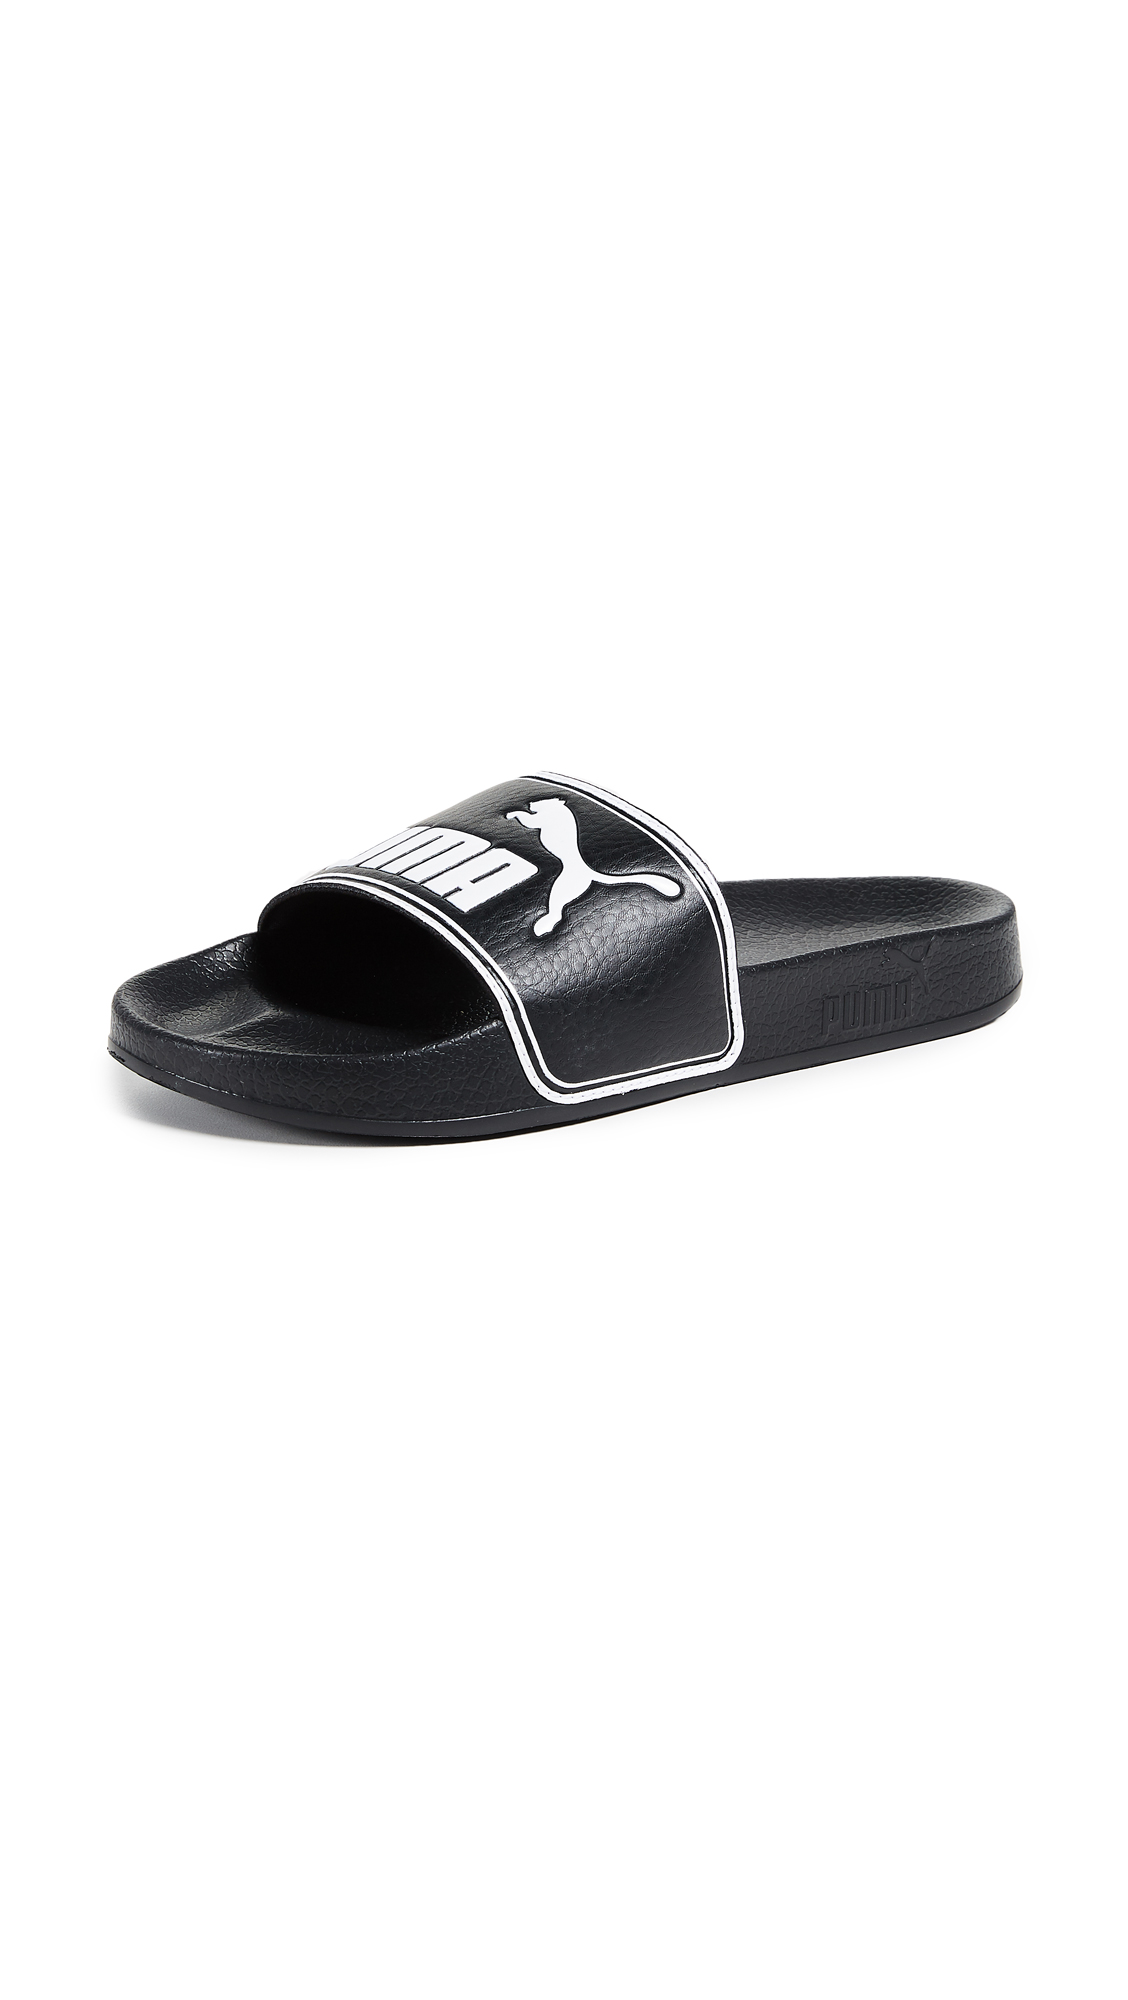 PUMA Leadcat Slides - Puma Black/Puma White